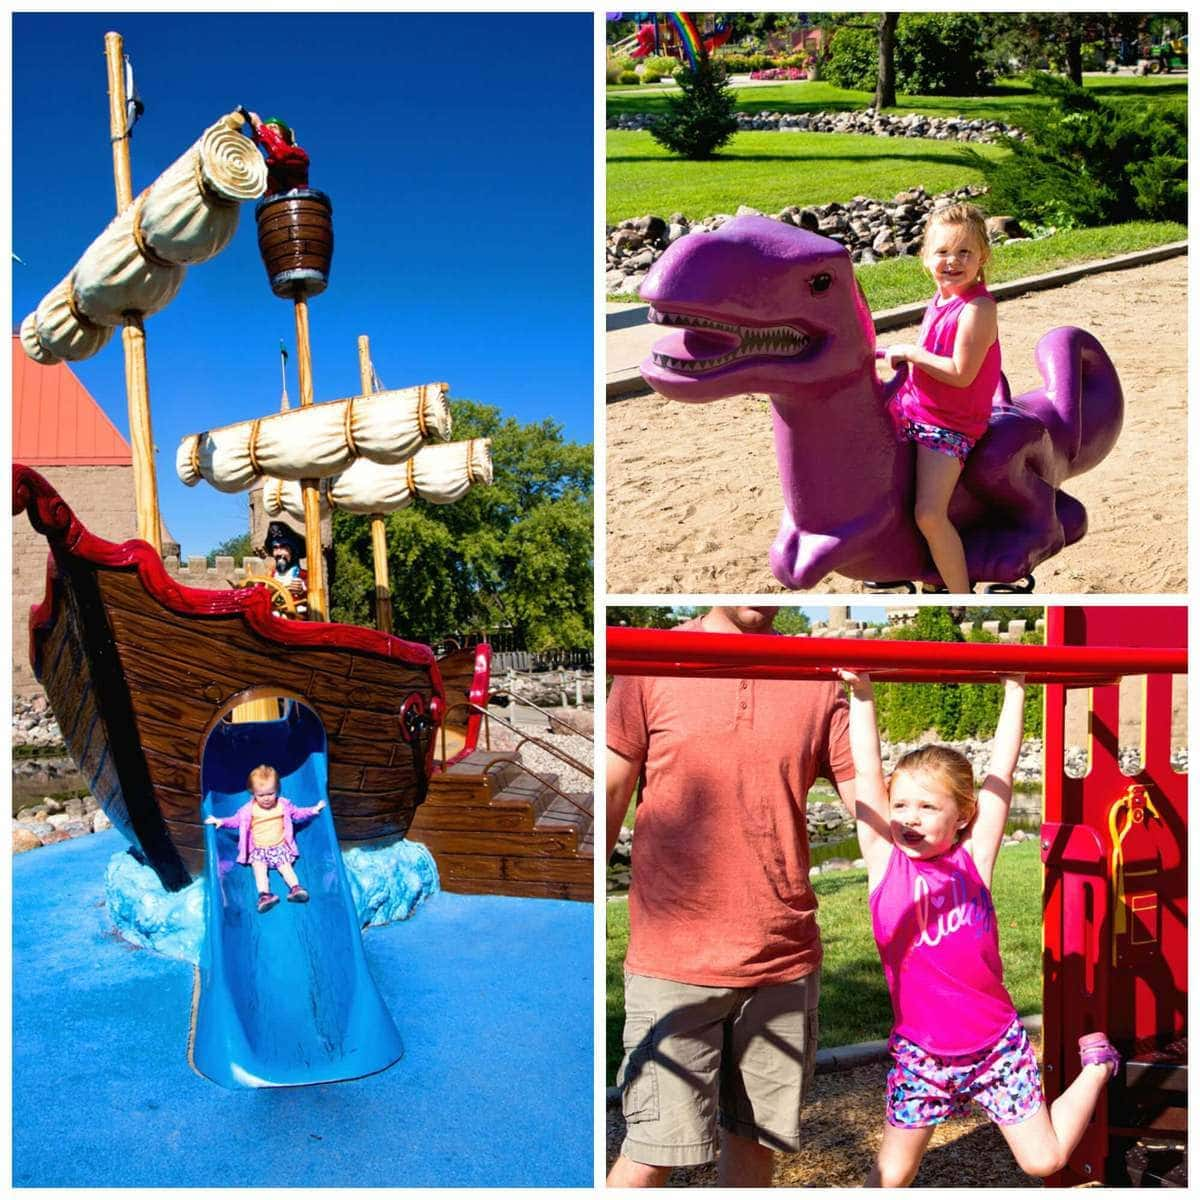 Watertown & Aberdeen, SD Family Vacation ~ Pool, Zoo and a Trip to Storybook Land! The Perfect Family Vacation for Young Children!